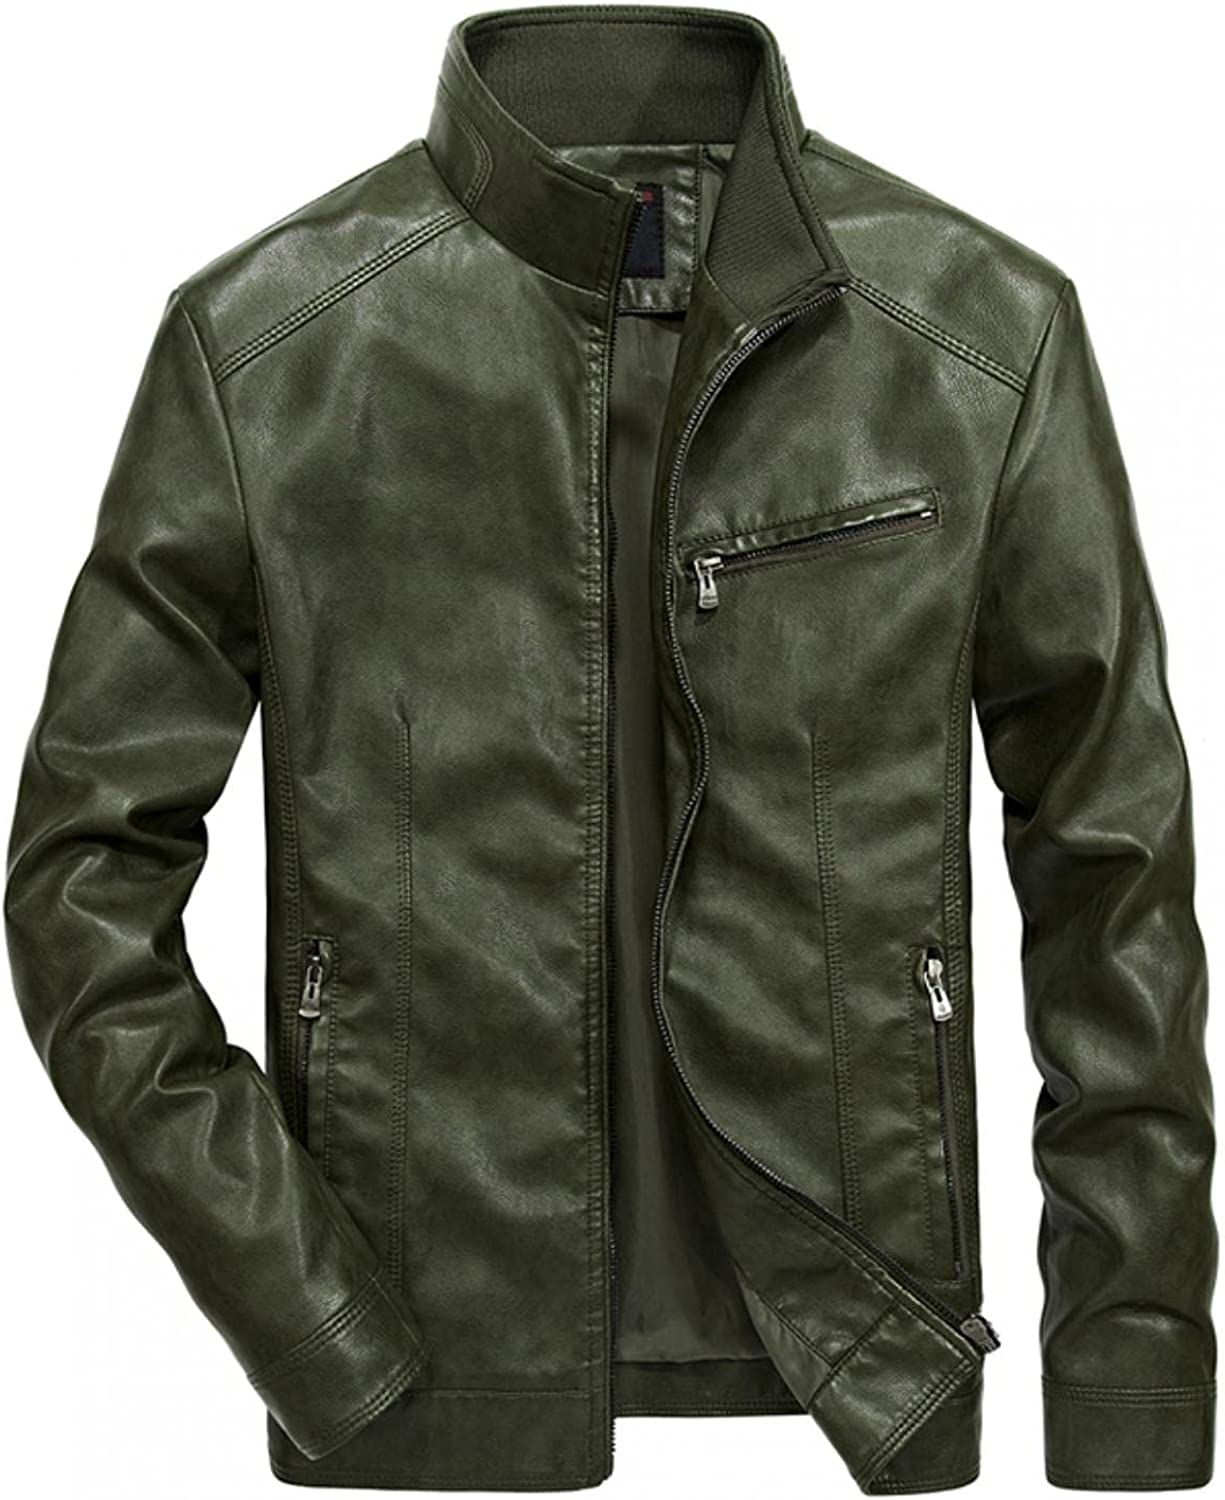 Hoodies for Men Men's Solid Color Motorcycle Jacket Long Slee Stand Collar Thick Zipper Leather Jacket Fashion Hoodies